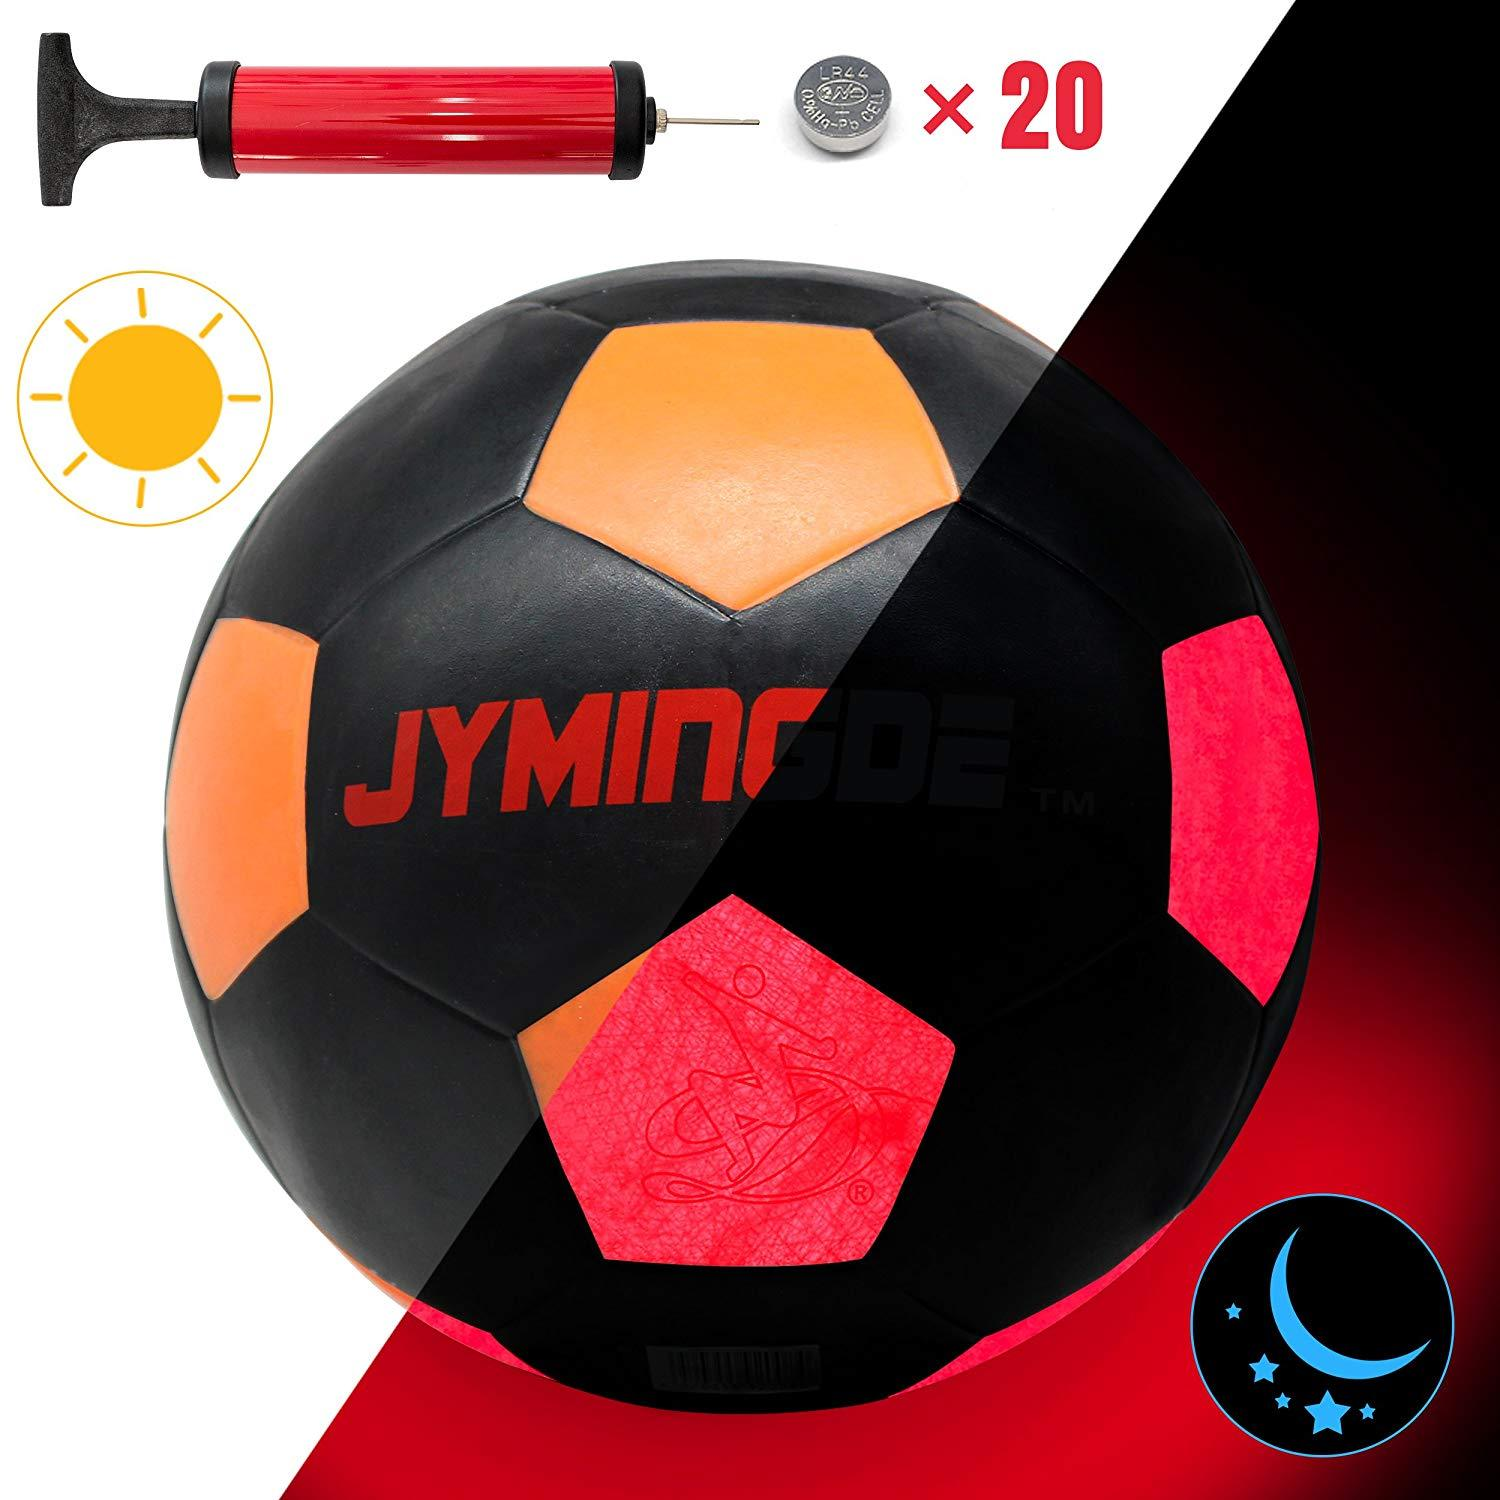 LED Football with accessories